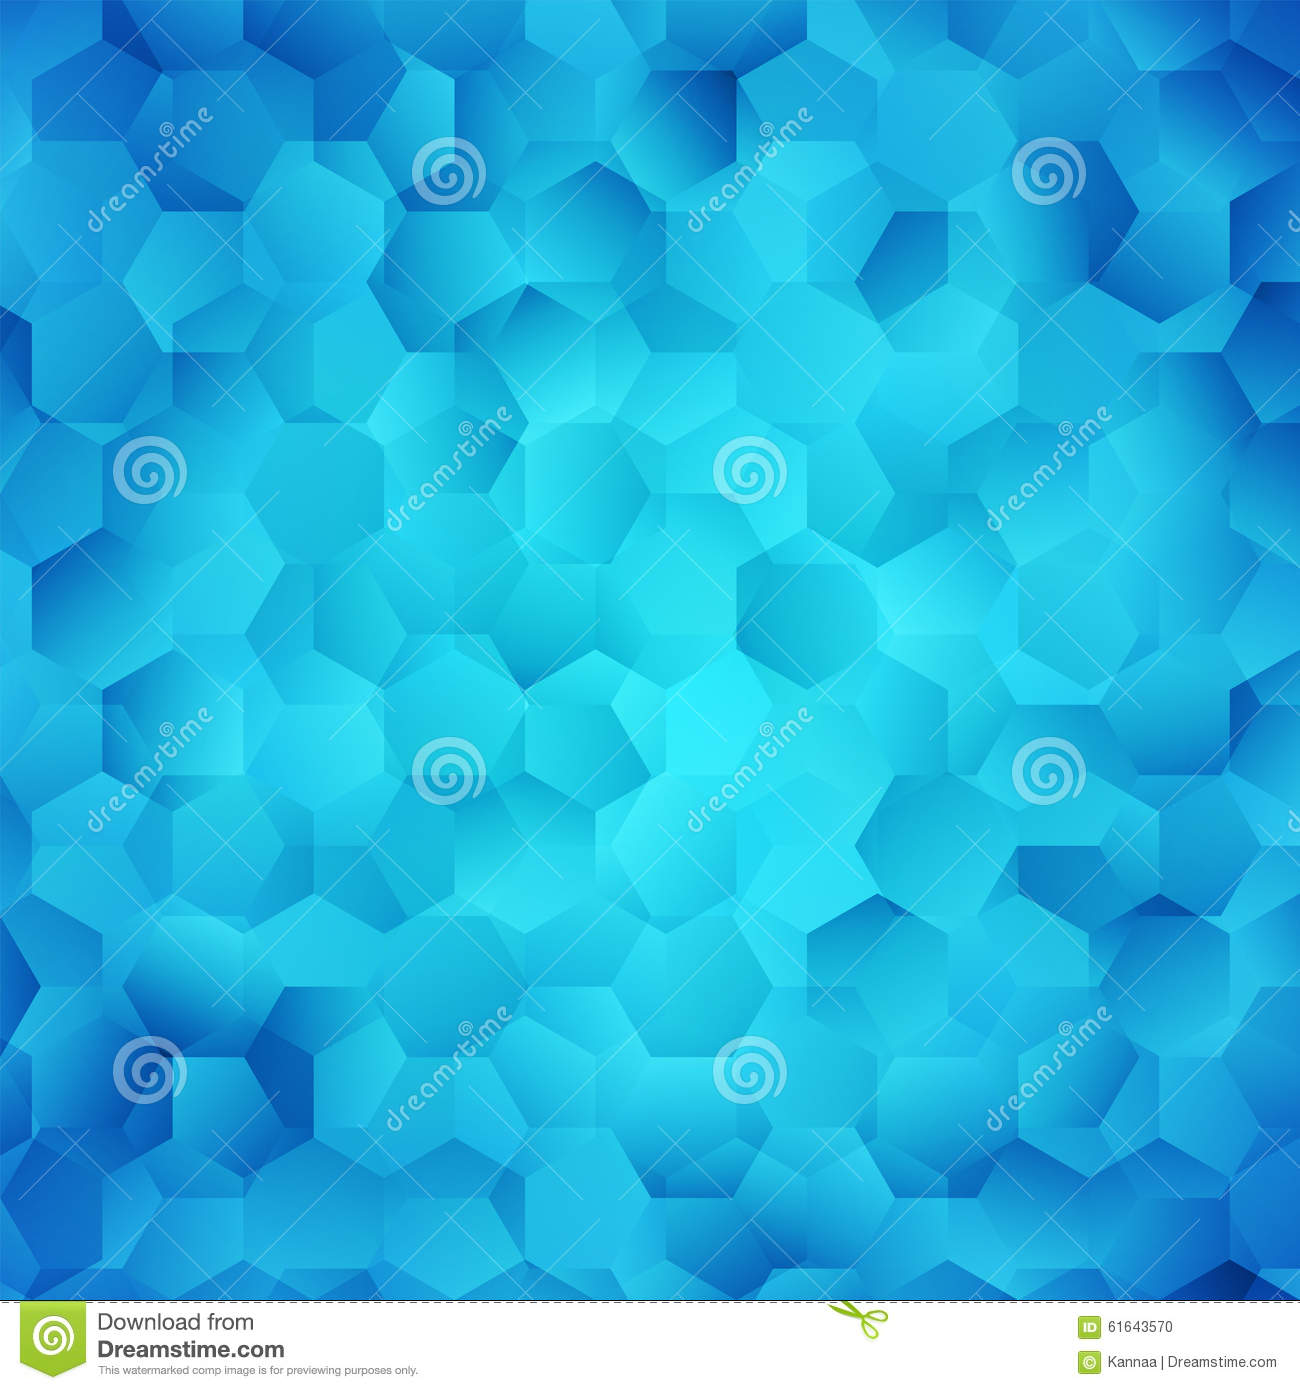 Gallery Of Bright Blue Wallpaper Royalty Free Stock Photos Image With